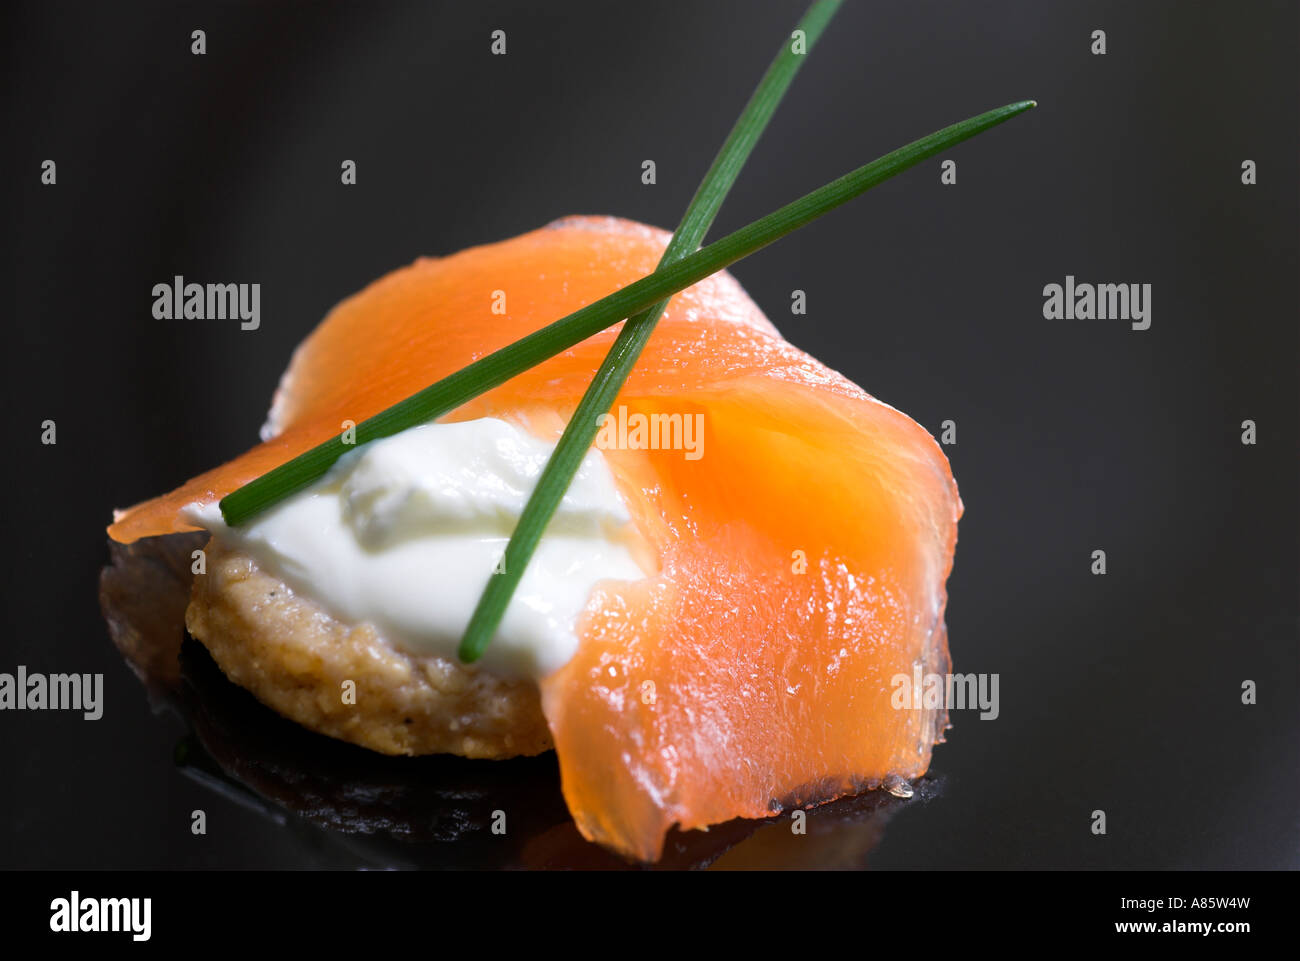 Smoked salmon canapes on a black plate. - Stock Image